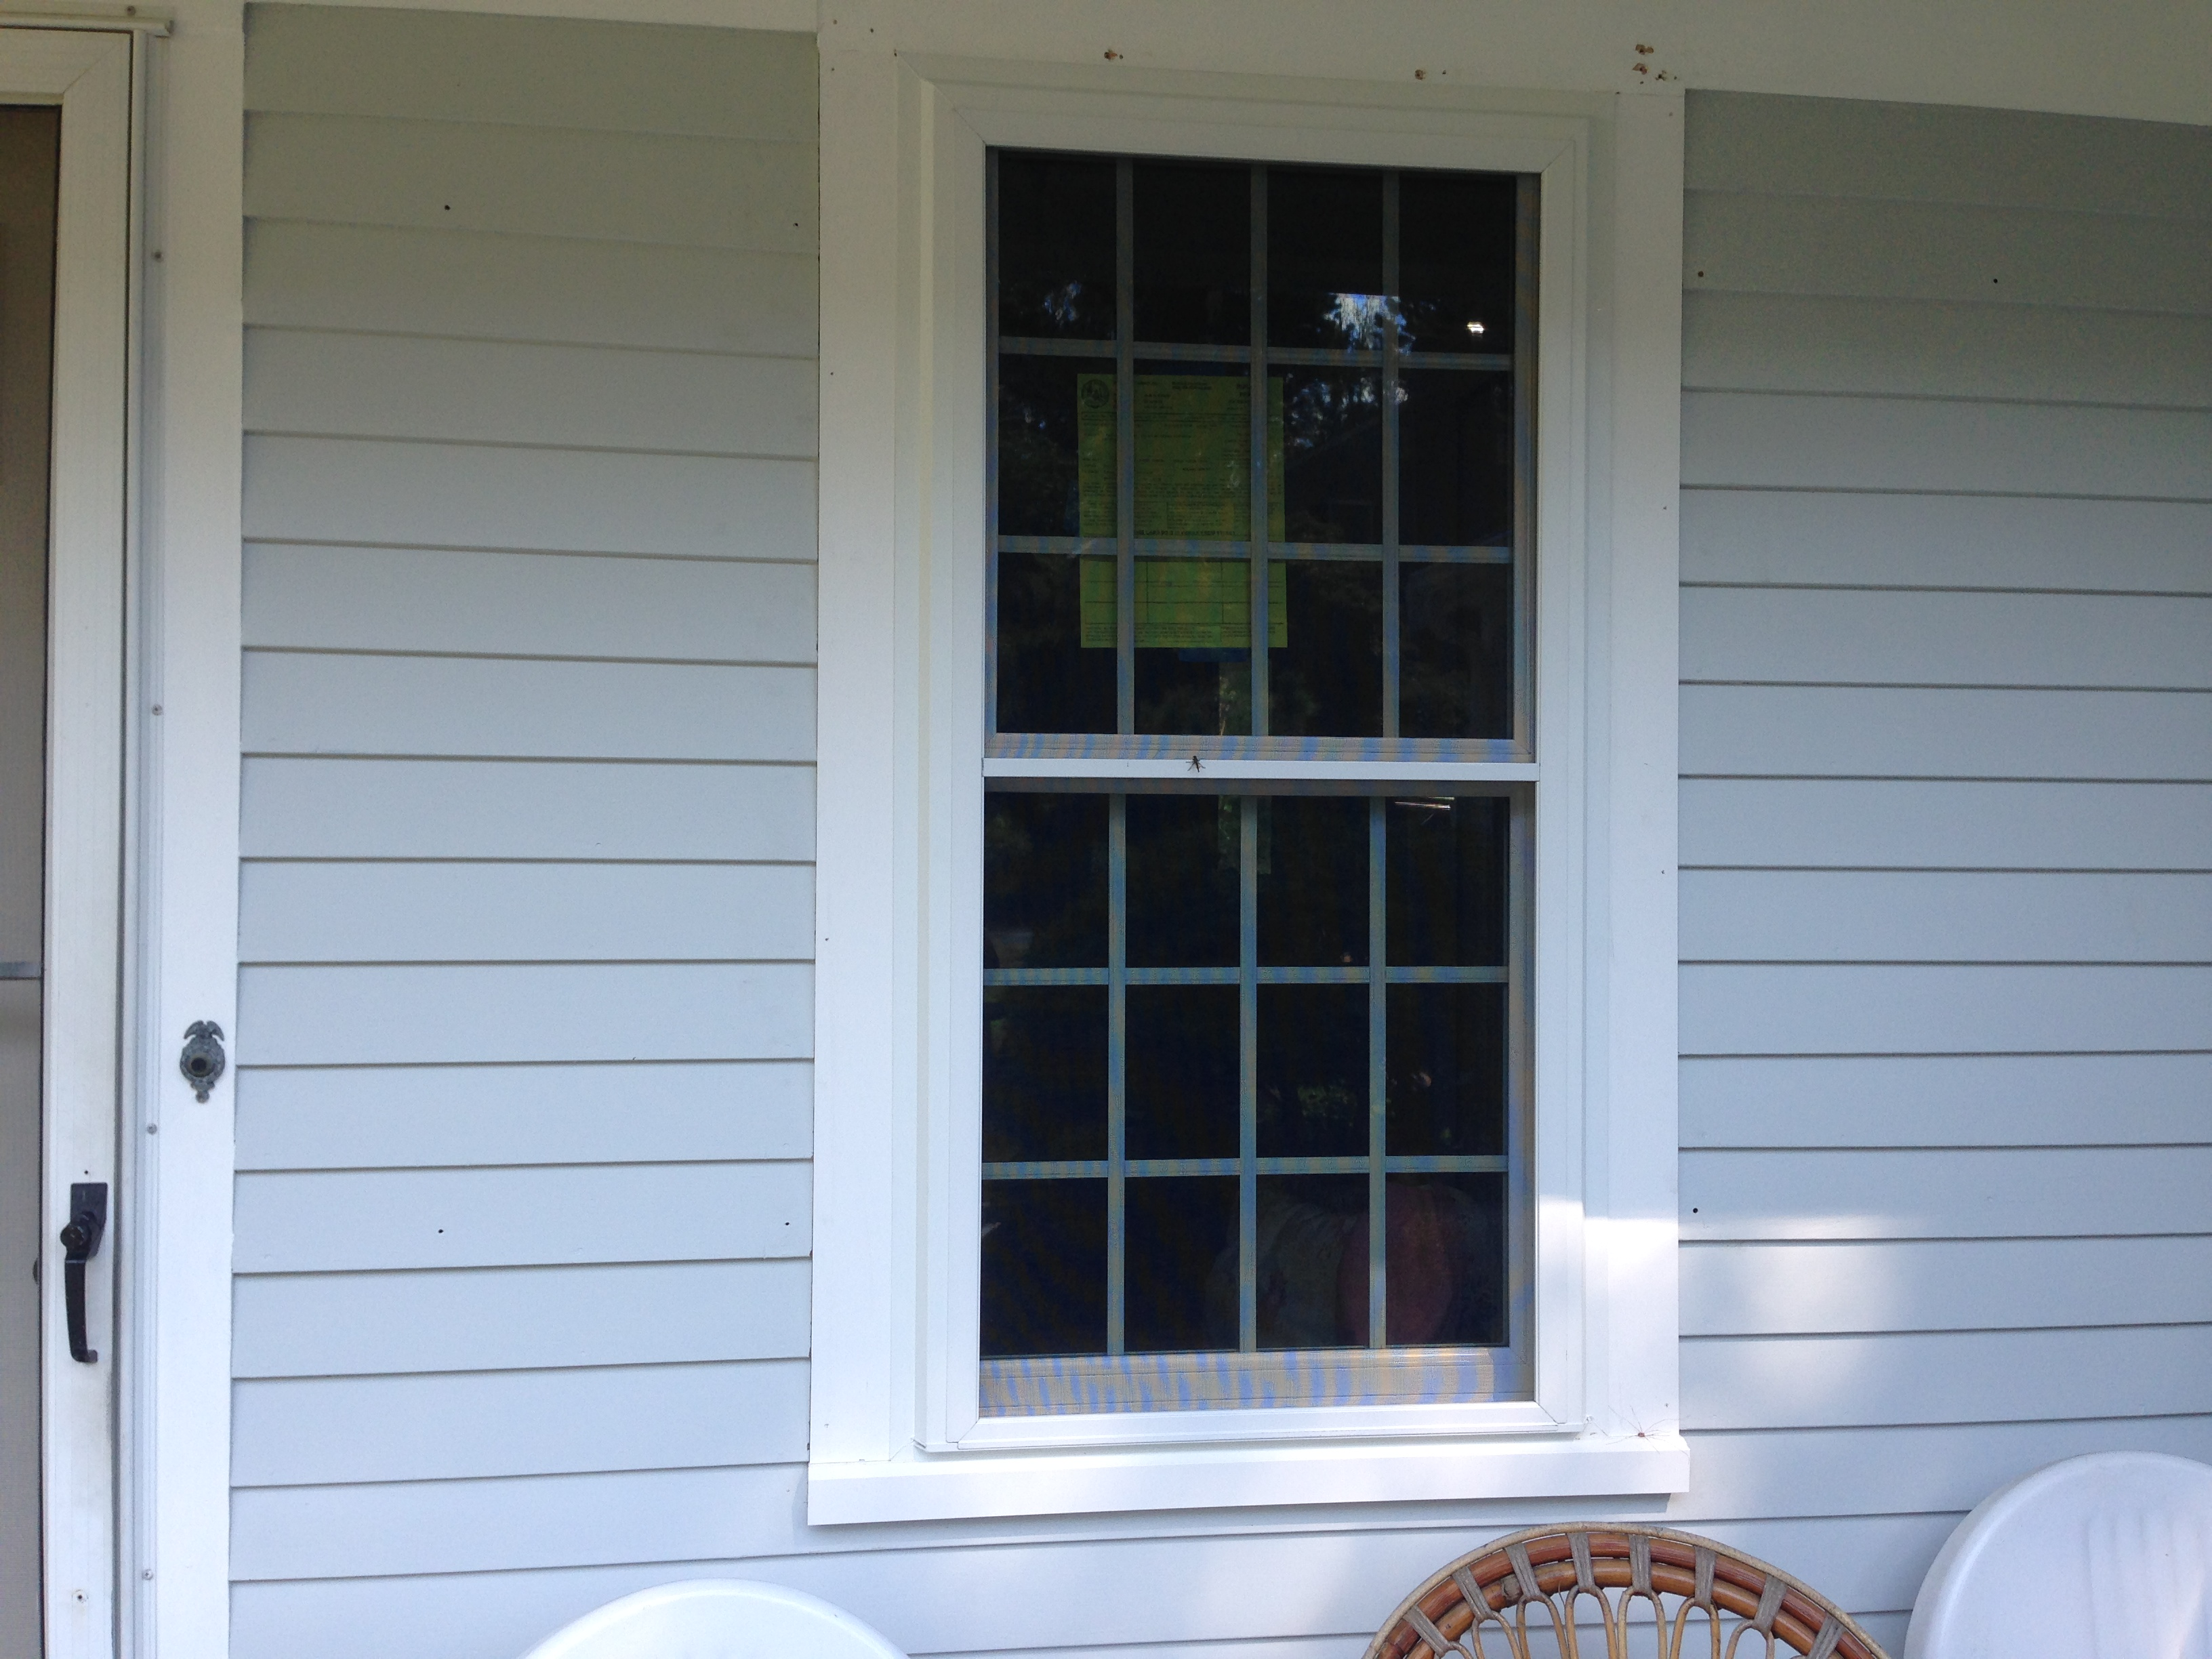 Eastham window replacement contractors Orleans MA